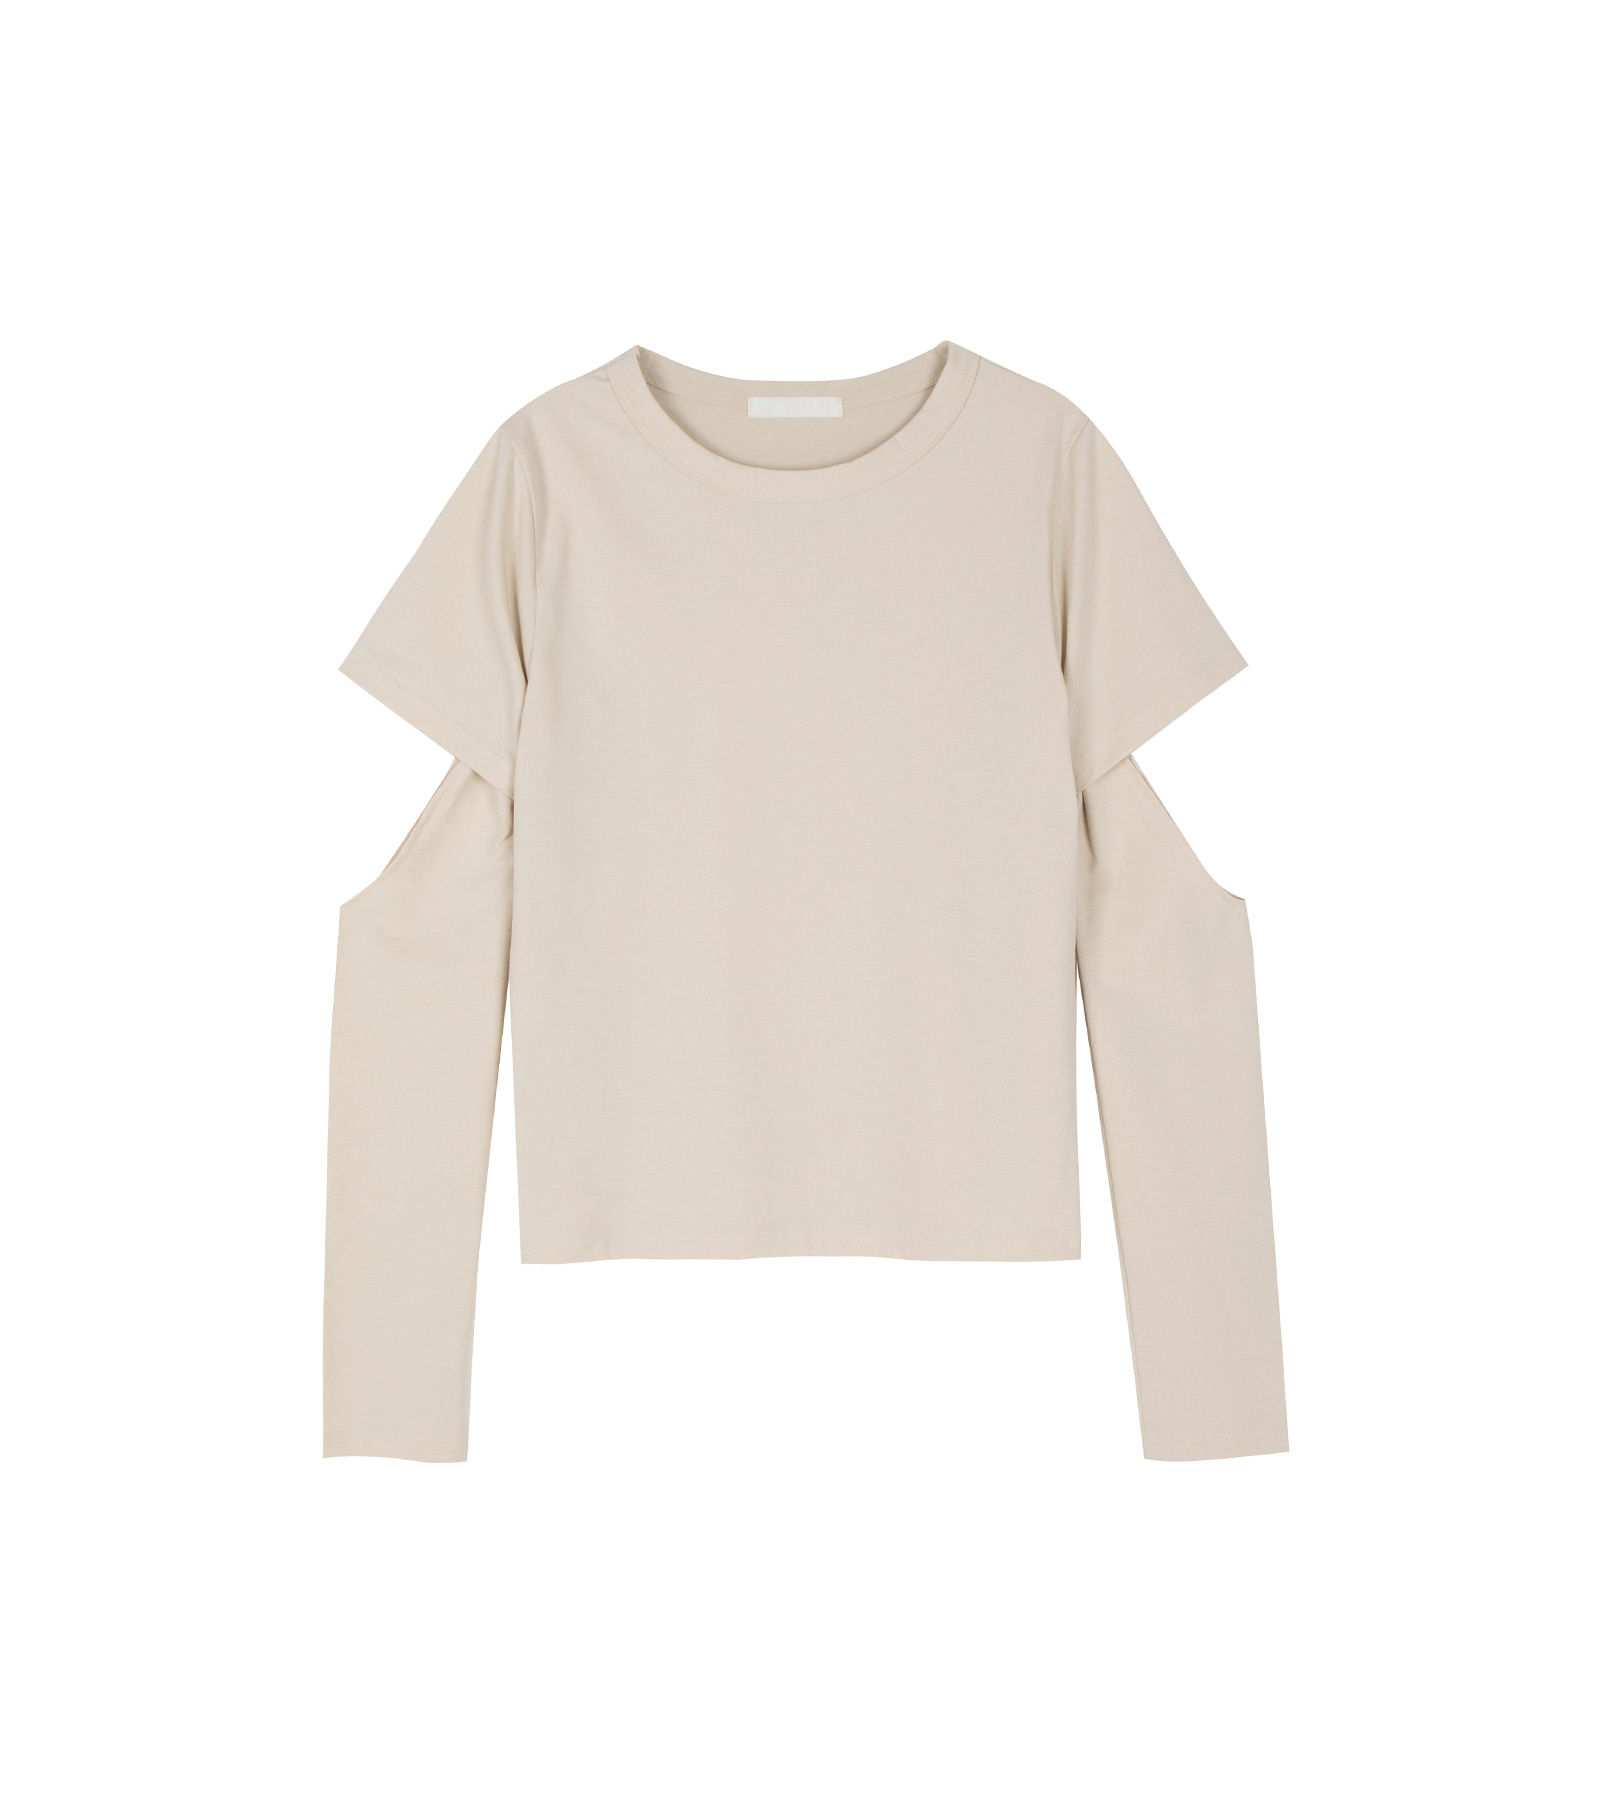 Slit warmer long sleeve top